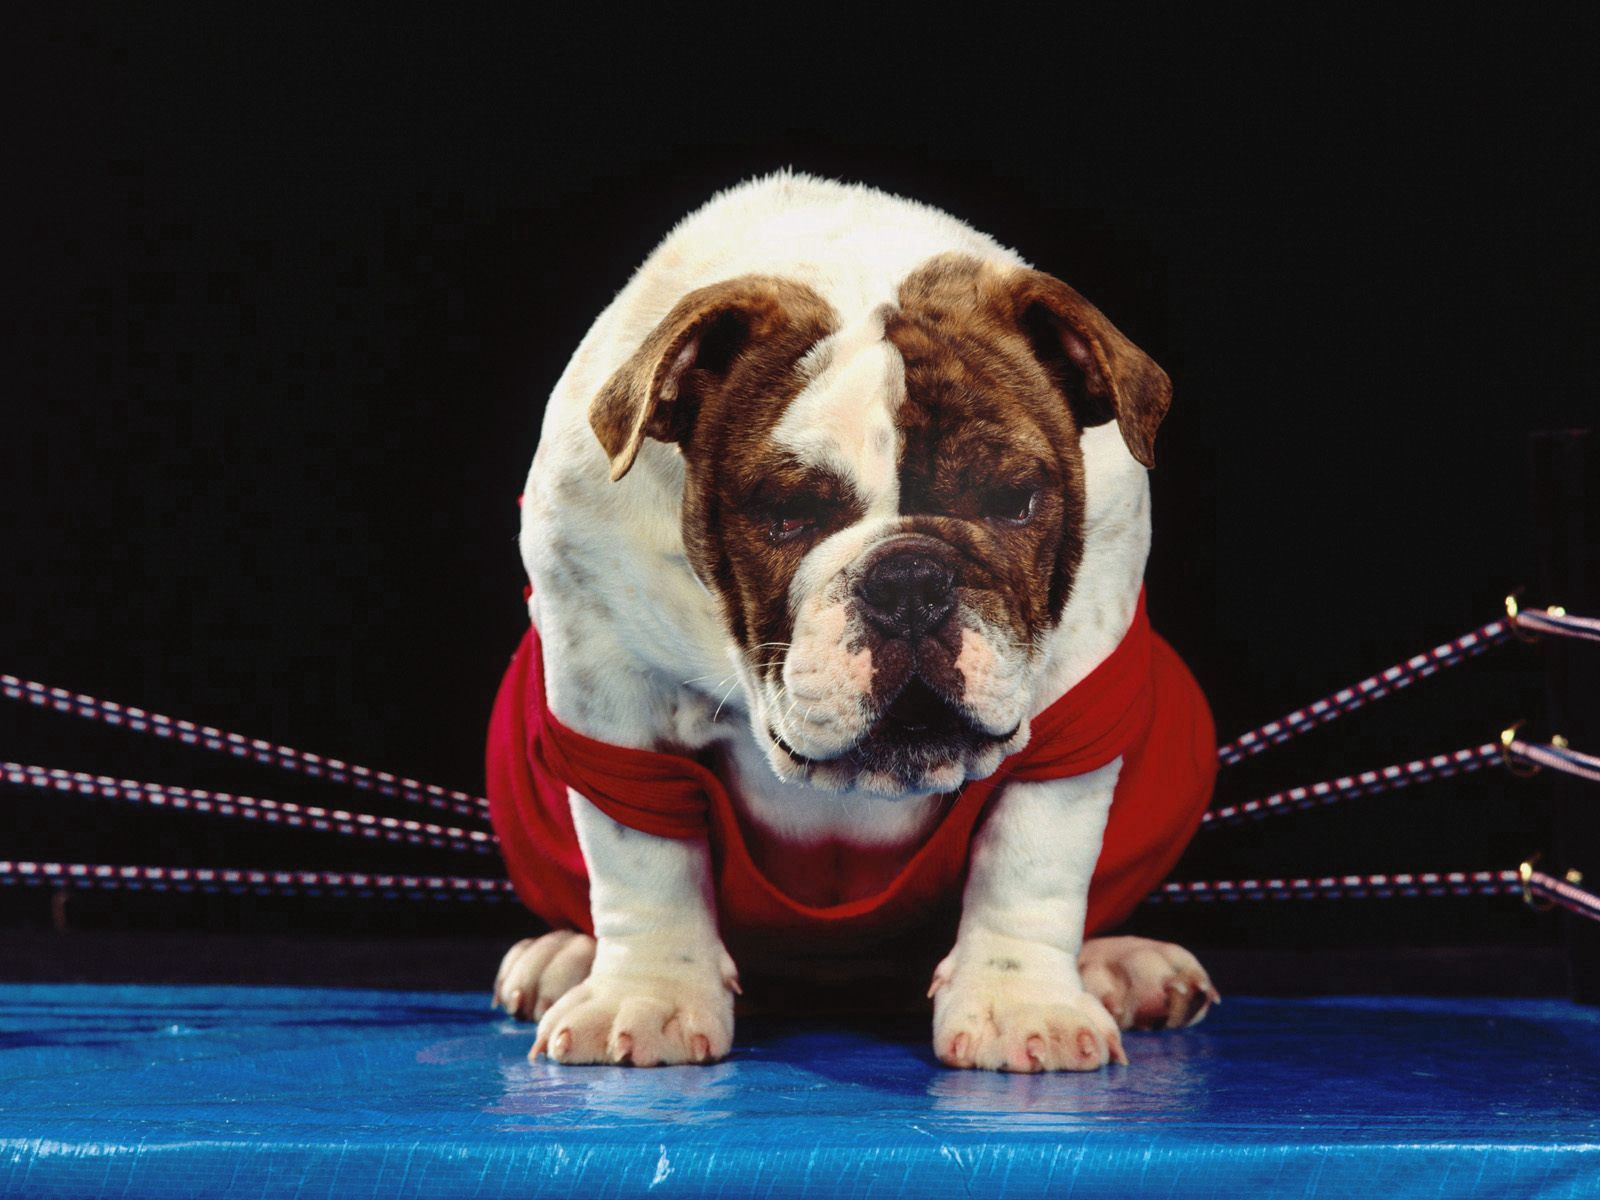 138718 download wallpaper Animals, Dog, Boxing Ring, Ring, Boxer, Bulldog screensavers and pictures for free